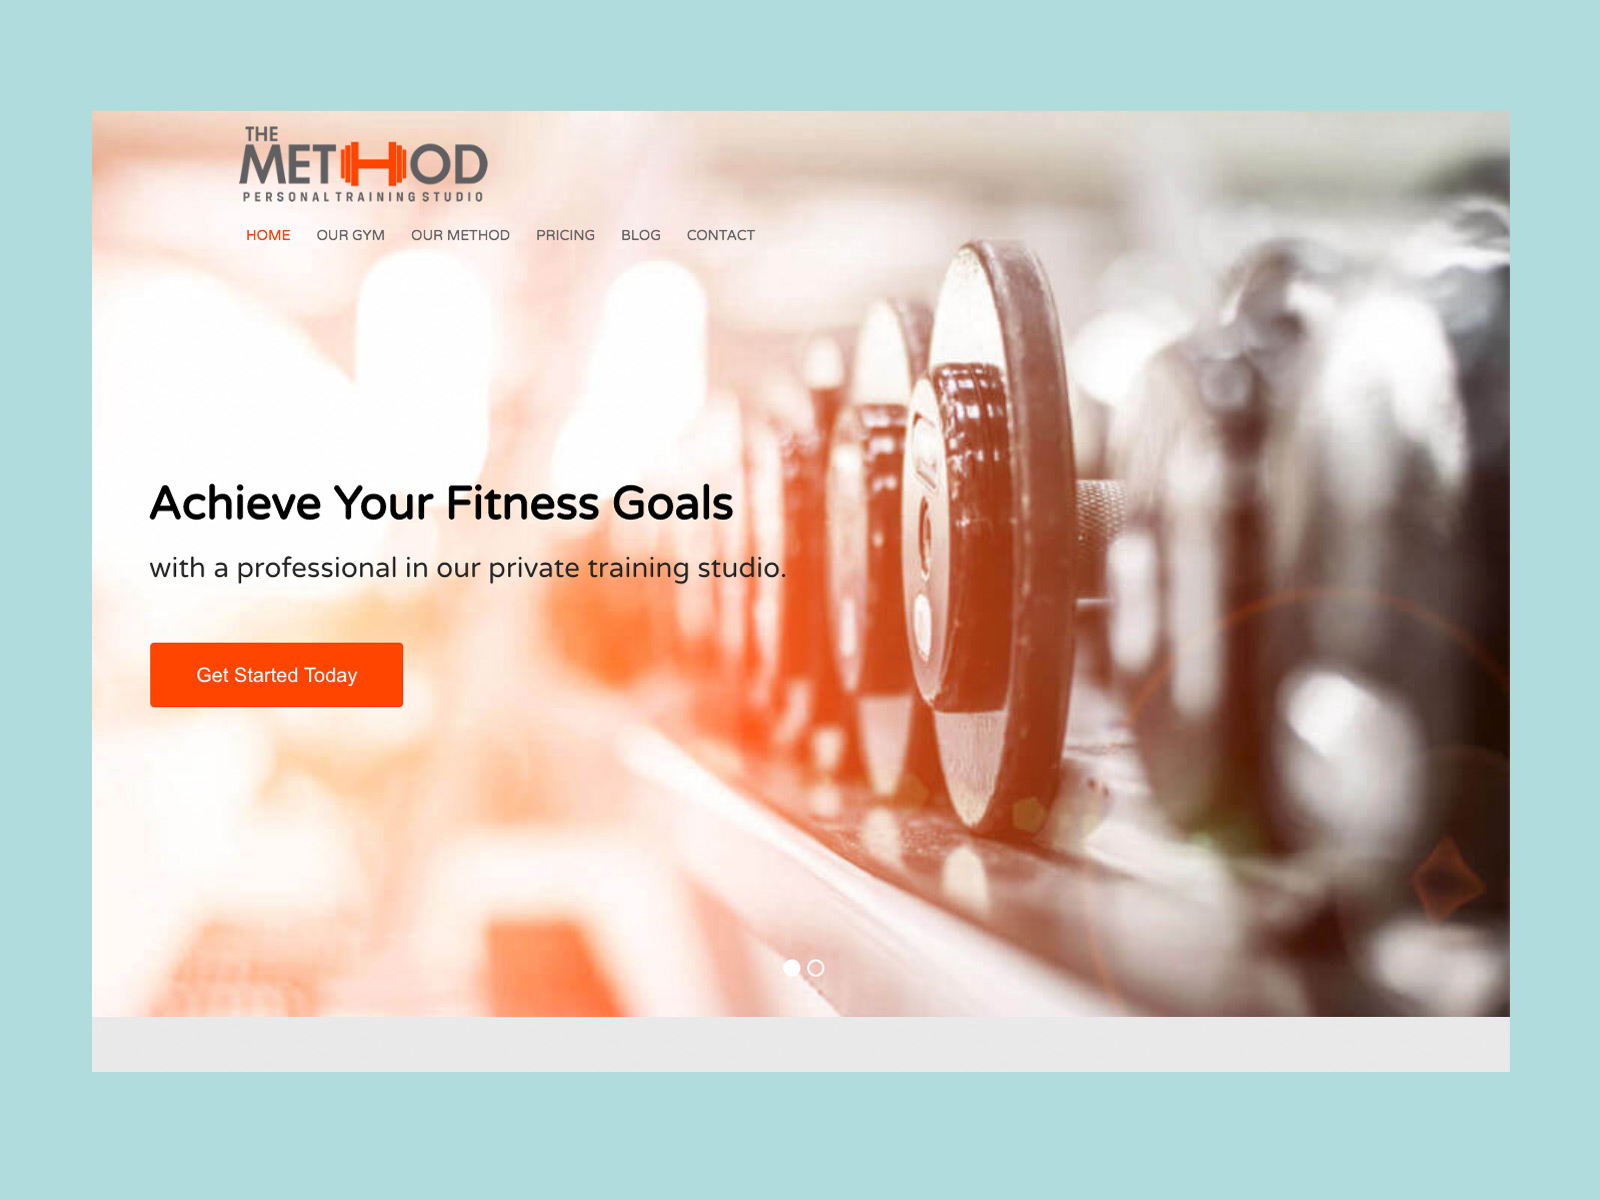 The Method Personal Training Studio - Raleigh, NC